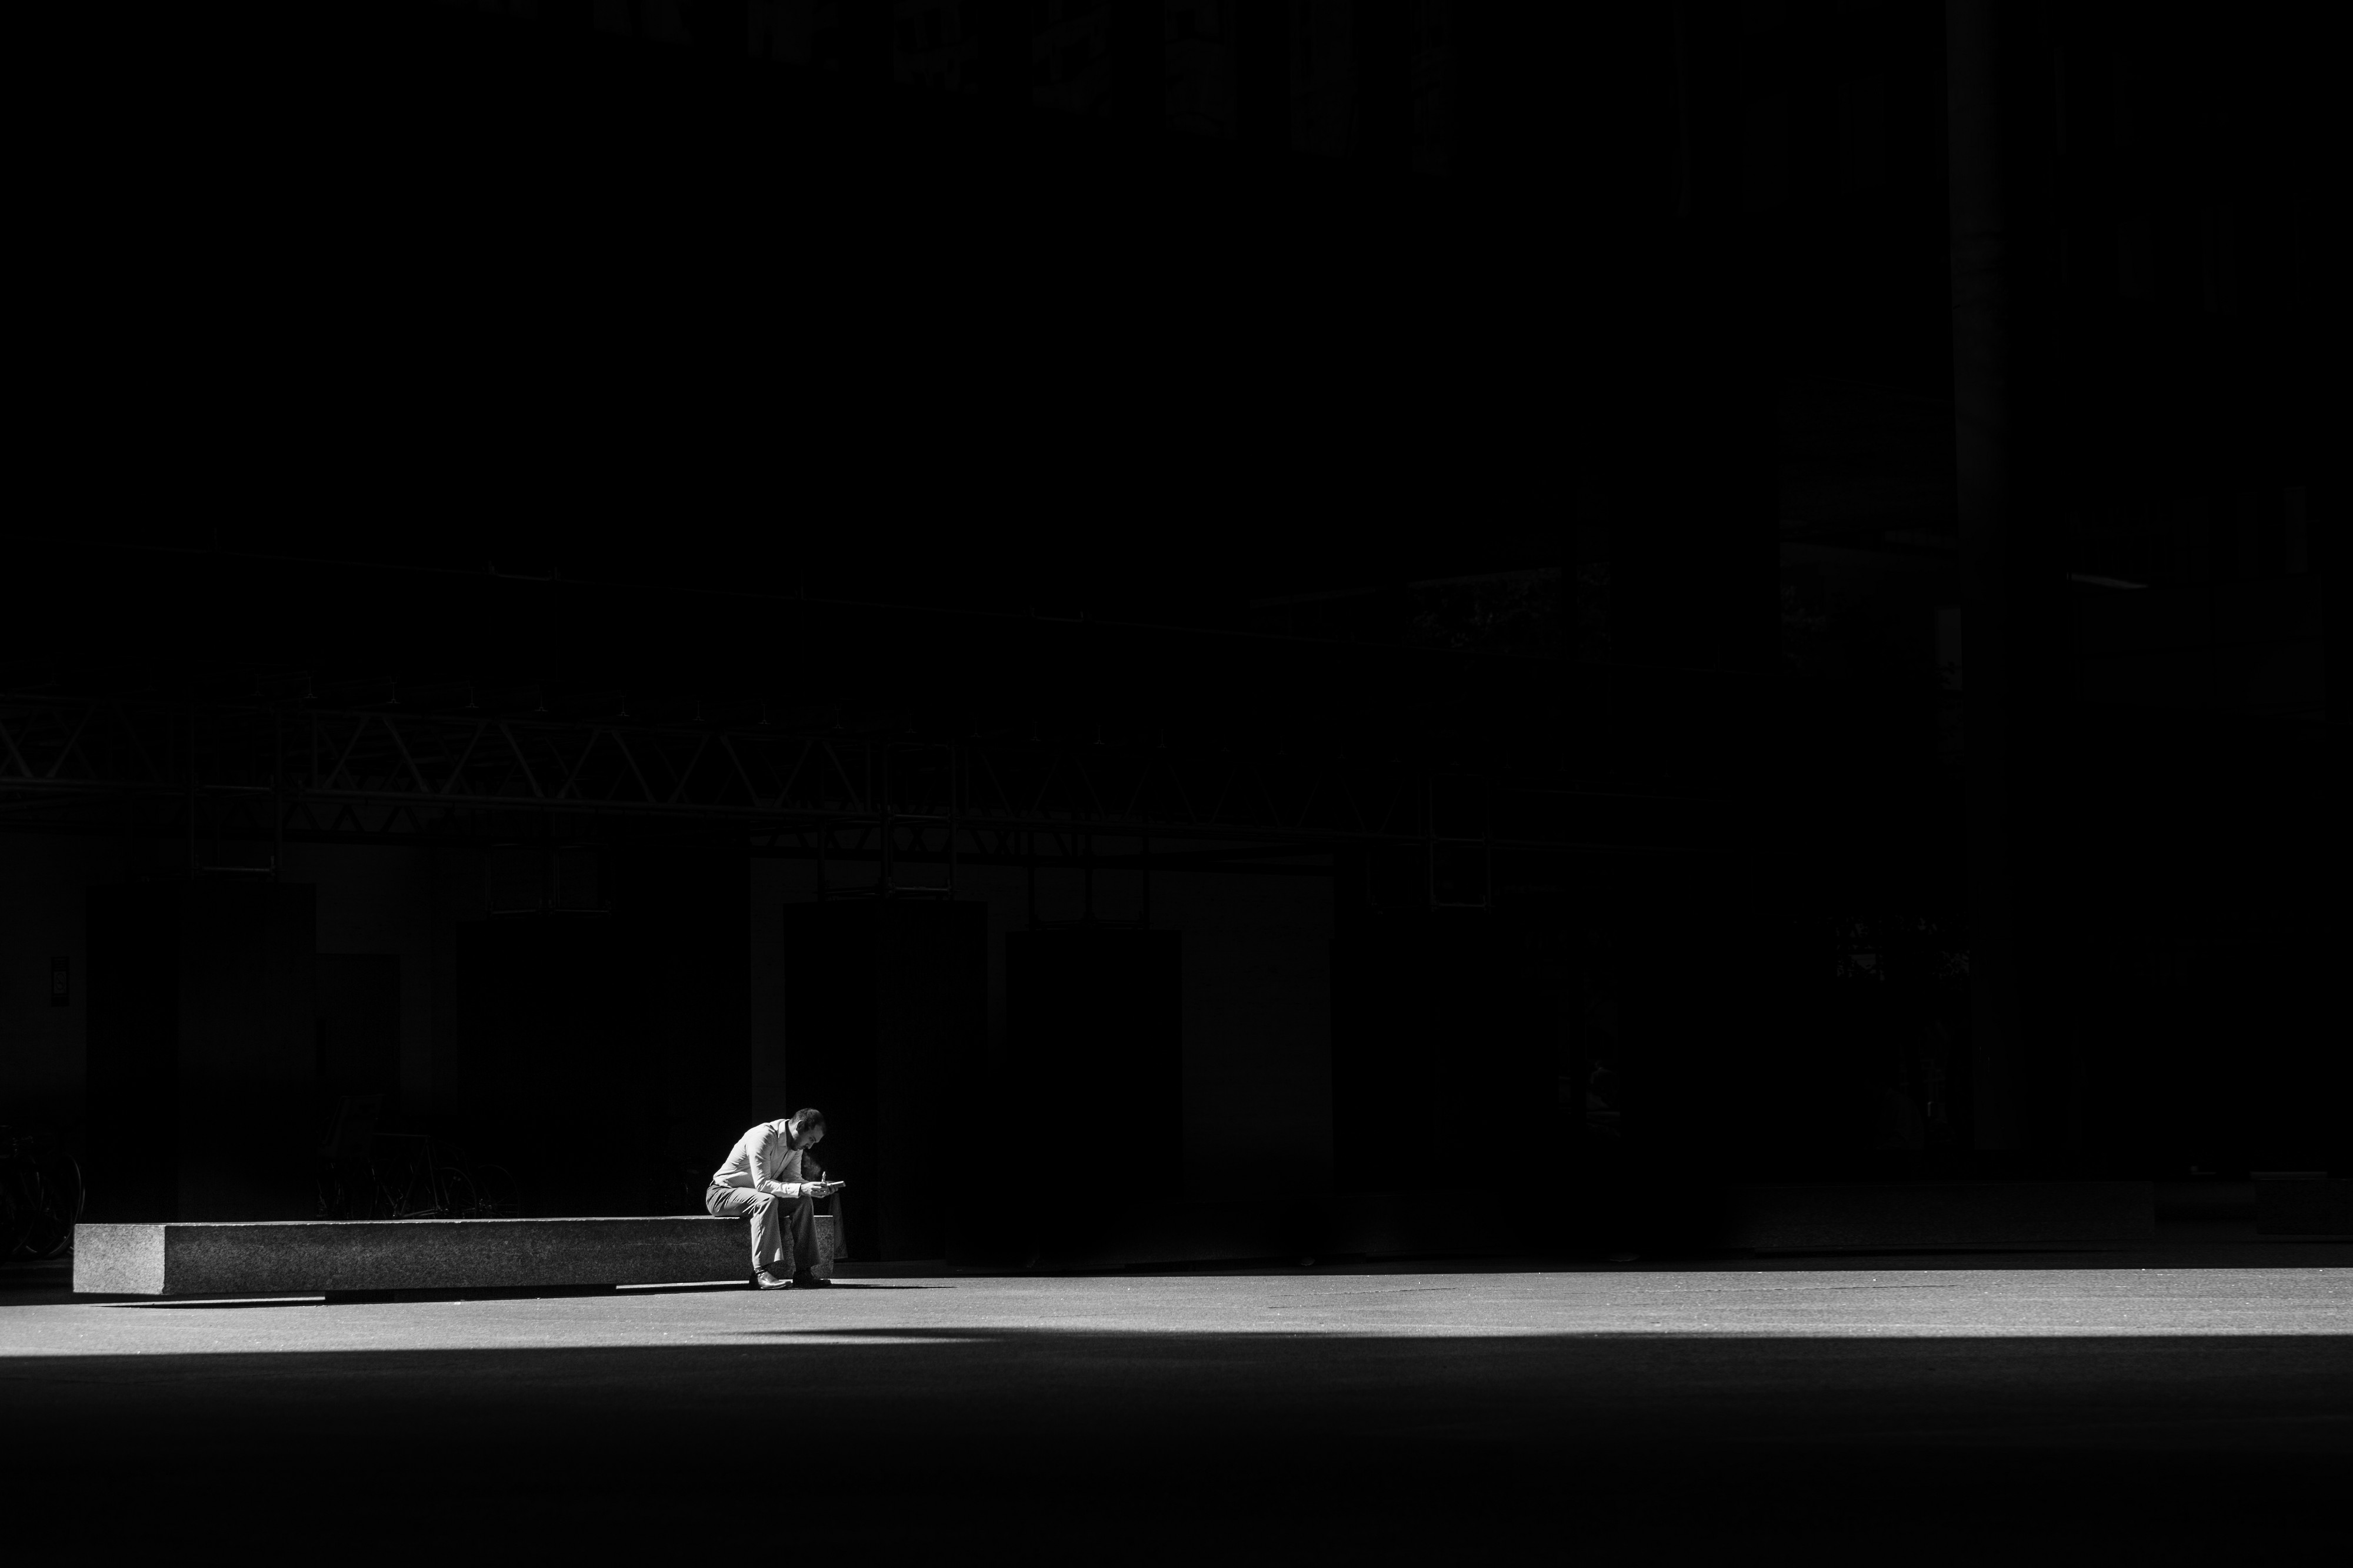 """Black and white image of a man sitting on a bench for article titled """"the closest I've come"""""""